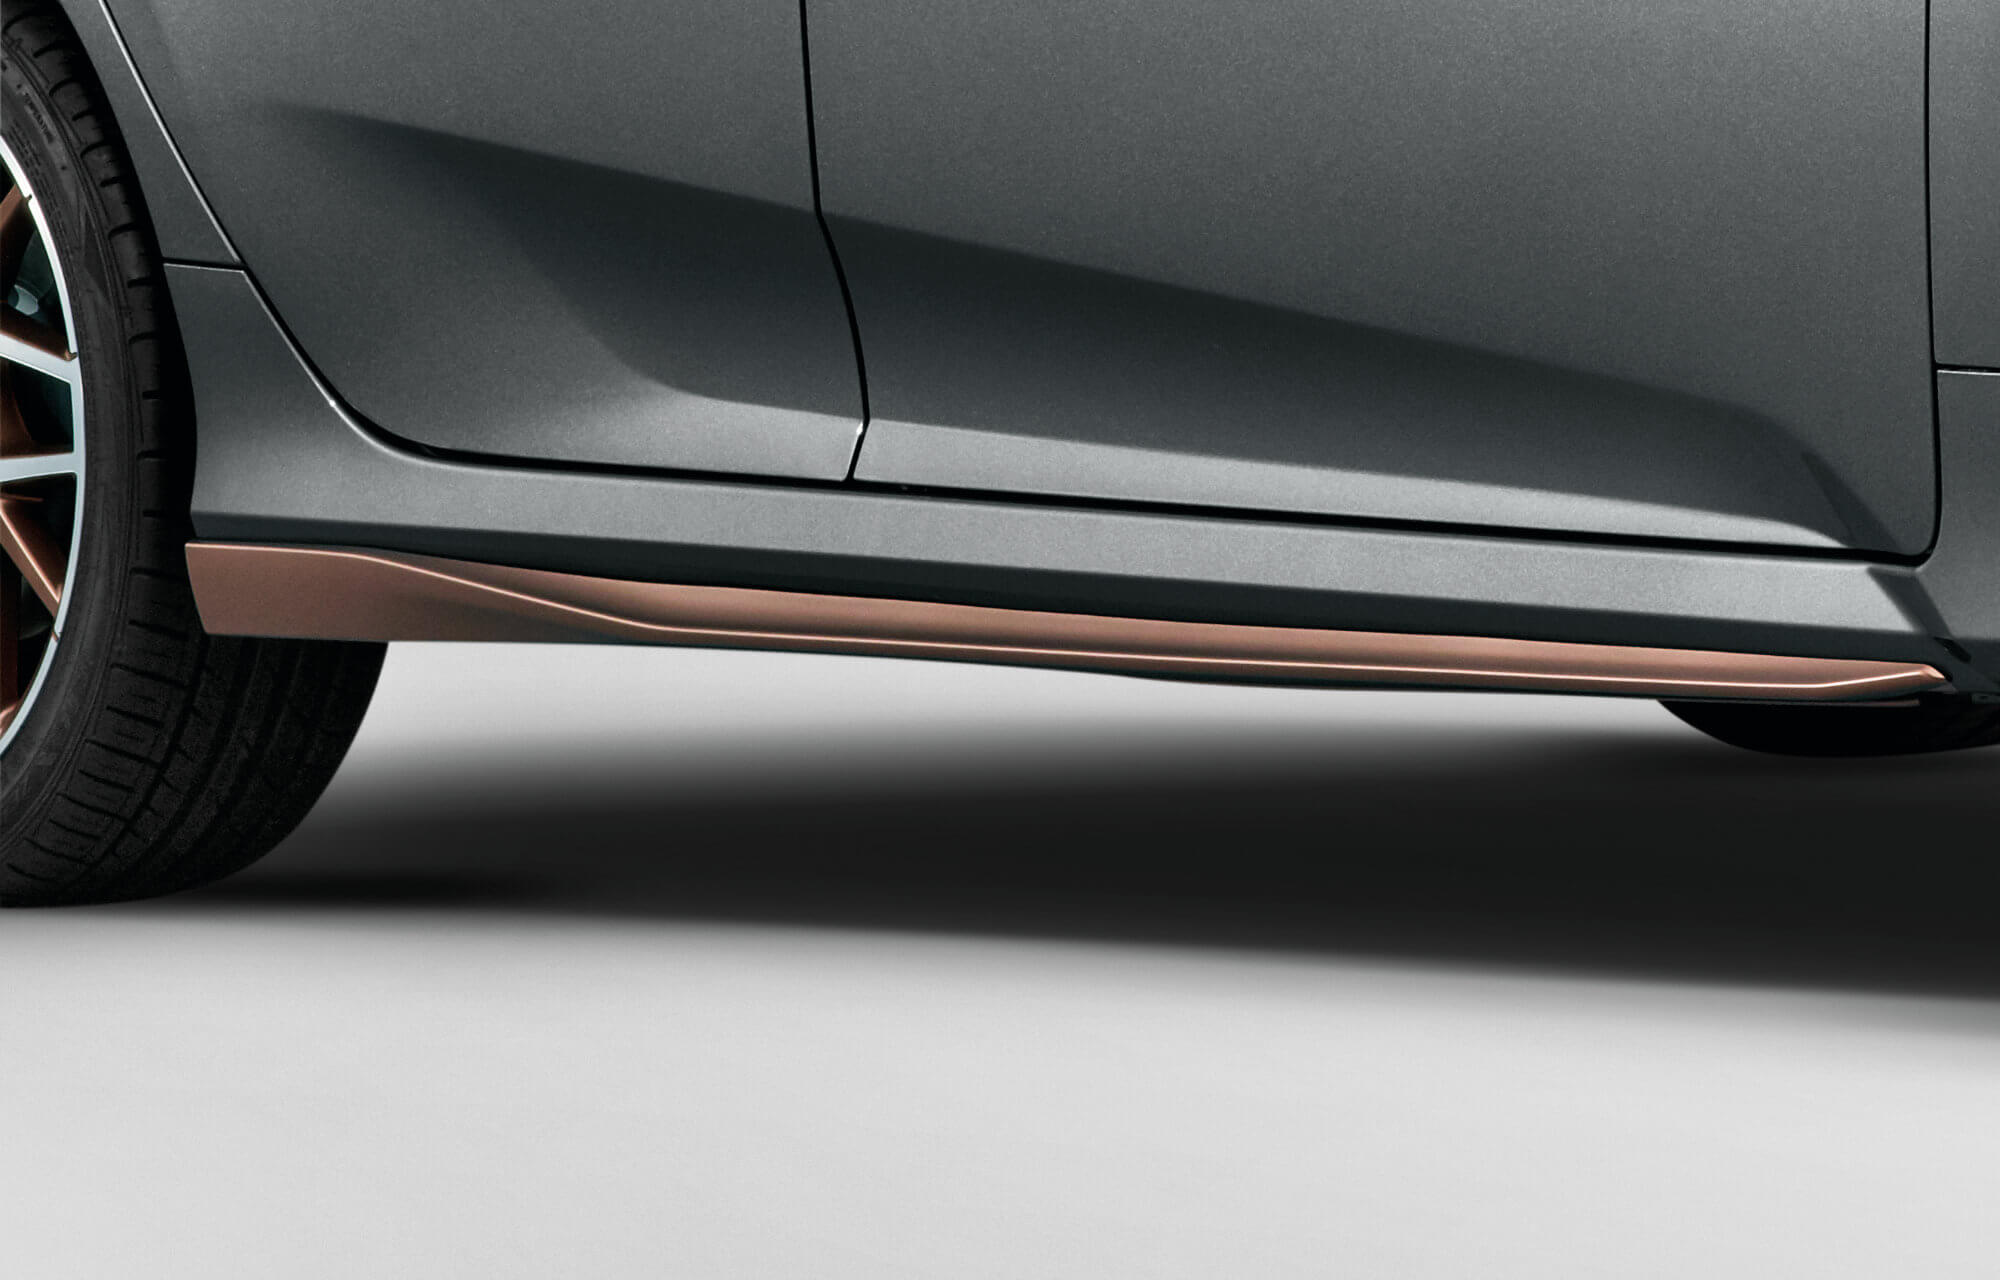 Honda Civic 5 Door Side Skirts - Infinite Bronze